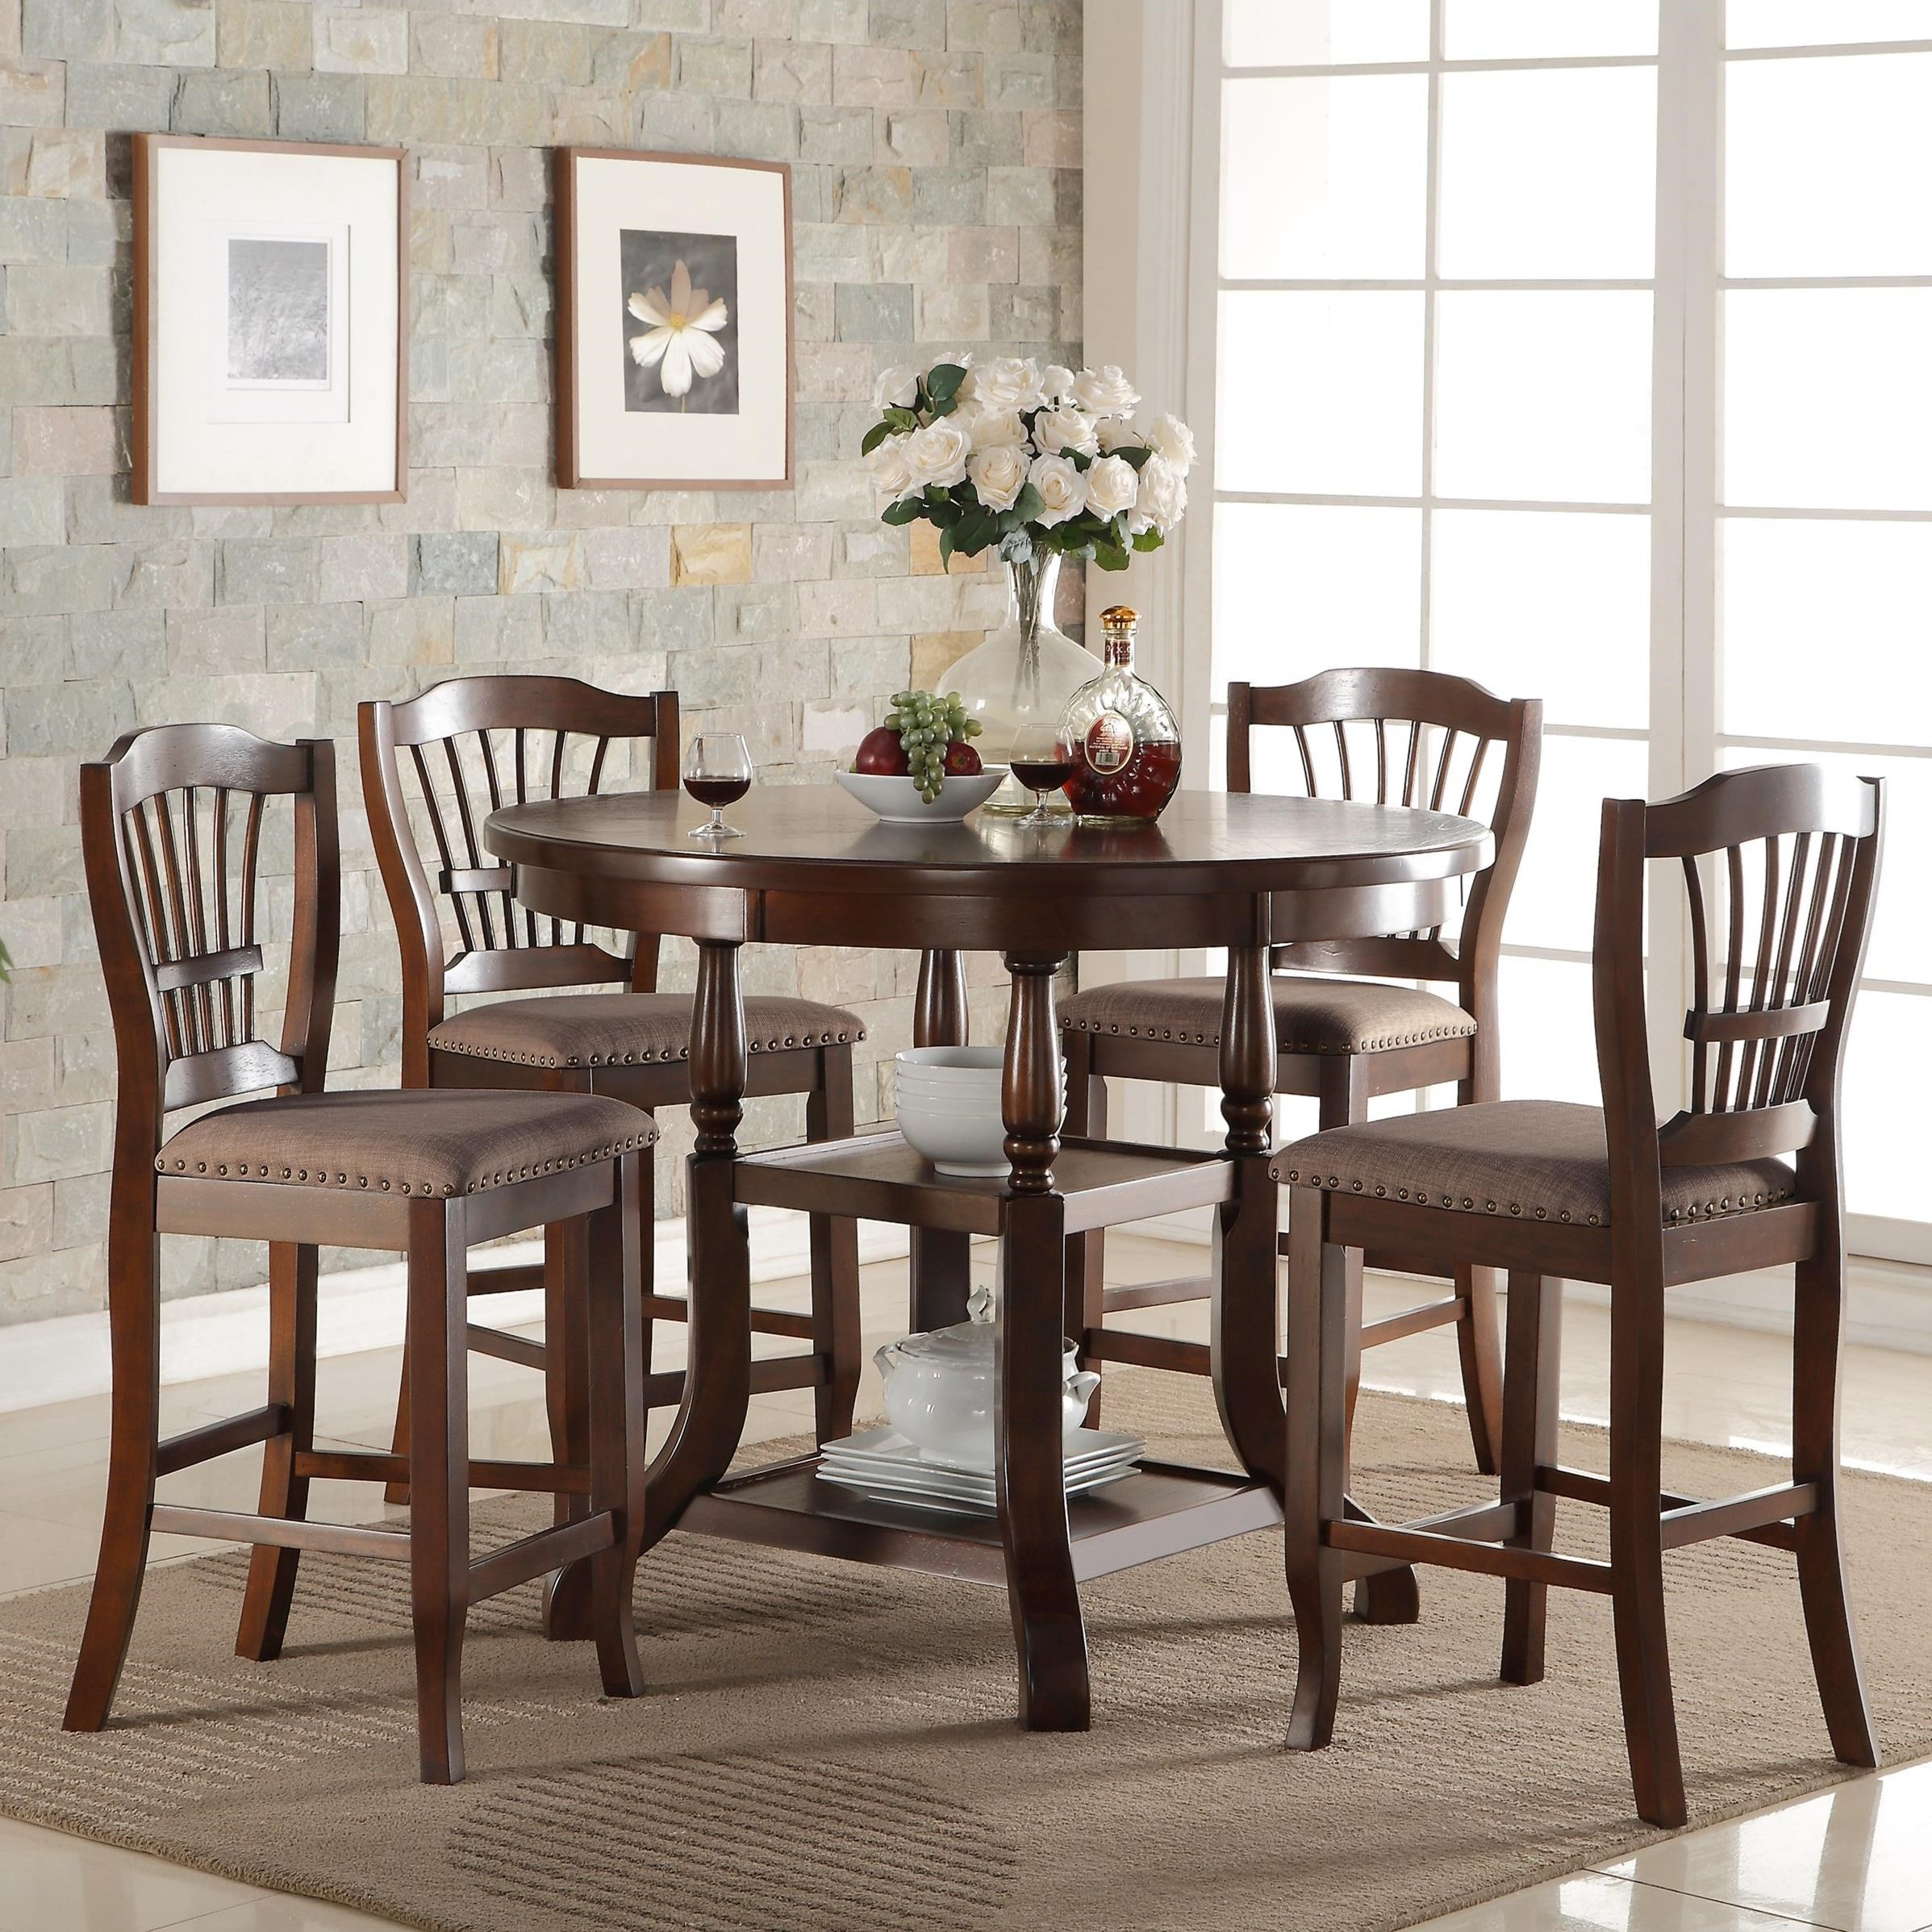 Bixby 5 Piece Round Counter Table Set by New Classic at Darvin Furniture